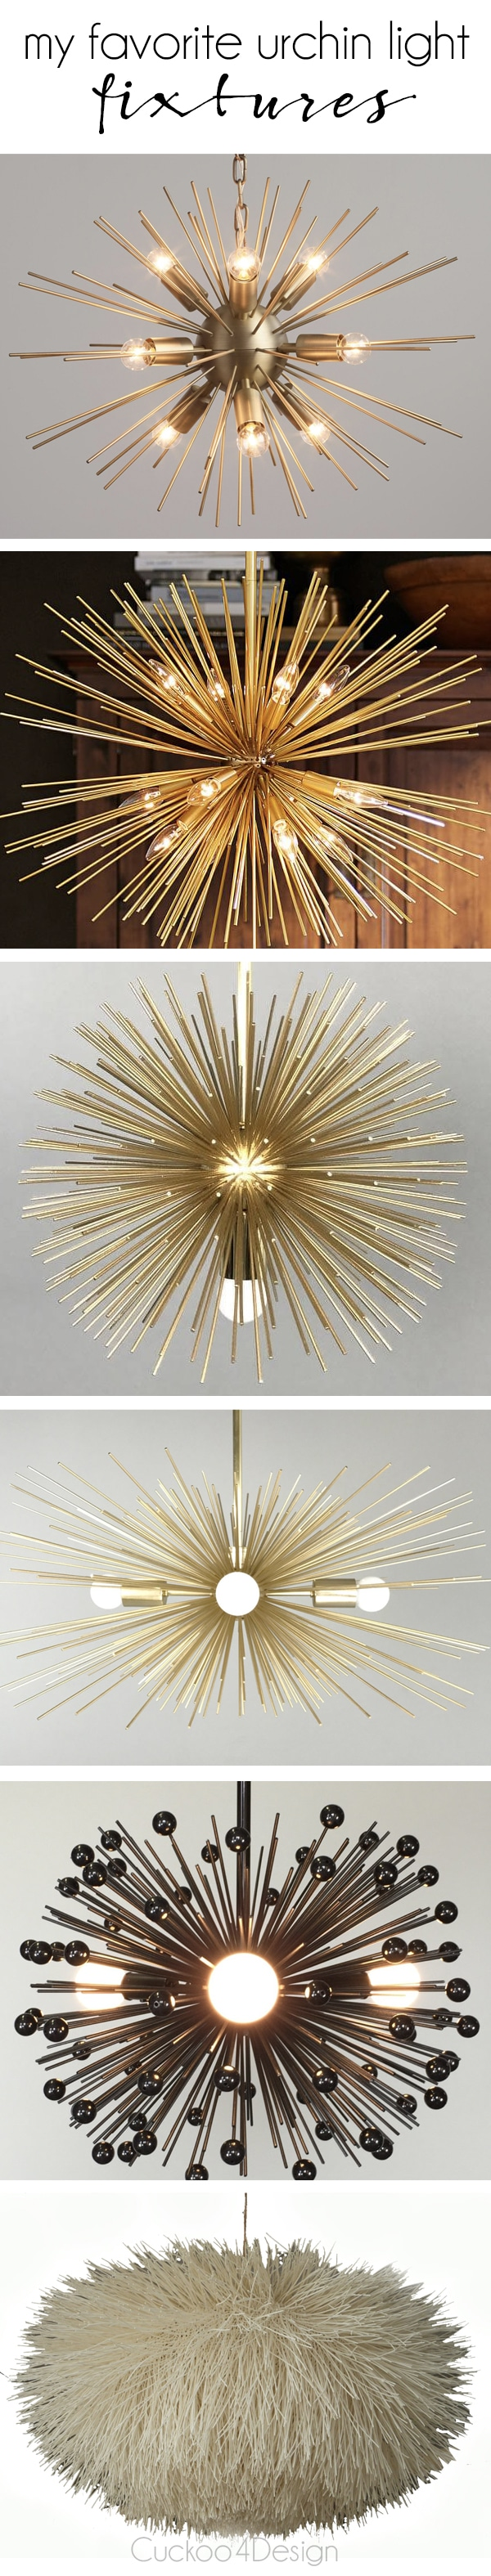 my favorite urchin light fixtures in black, gold and cream